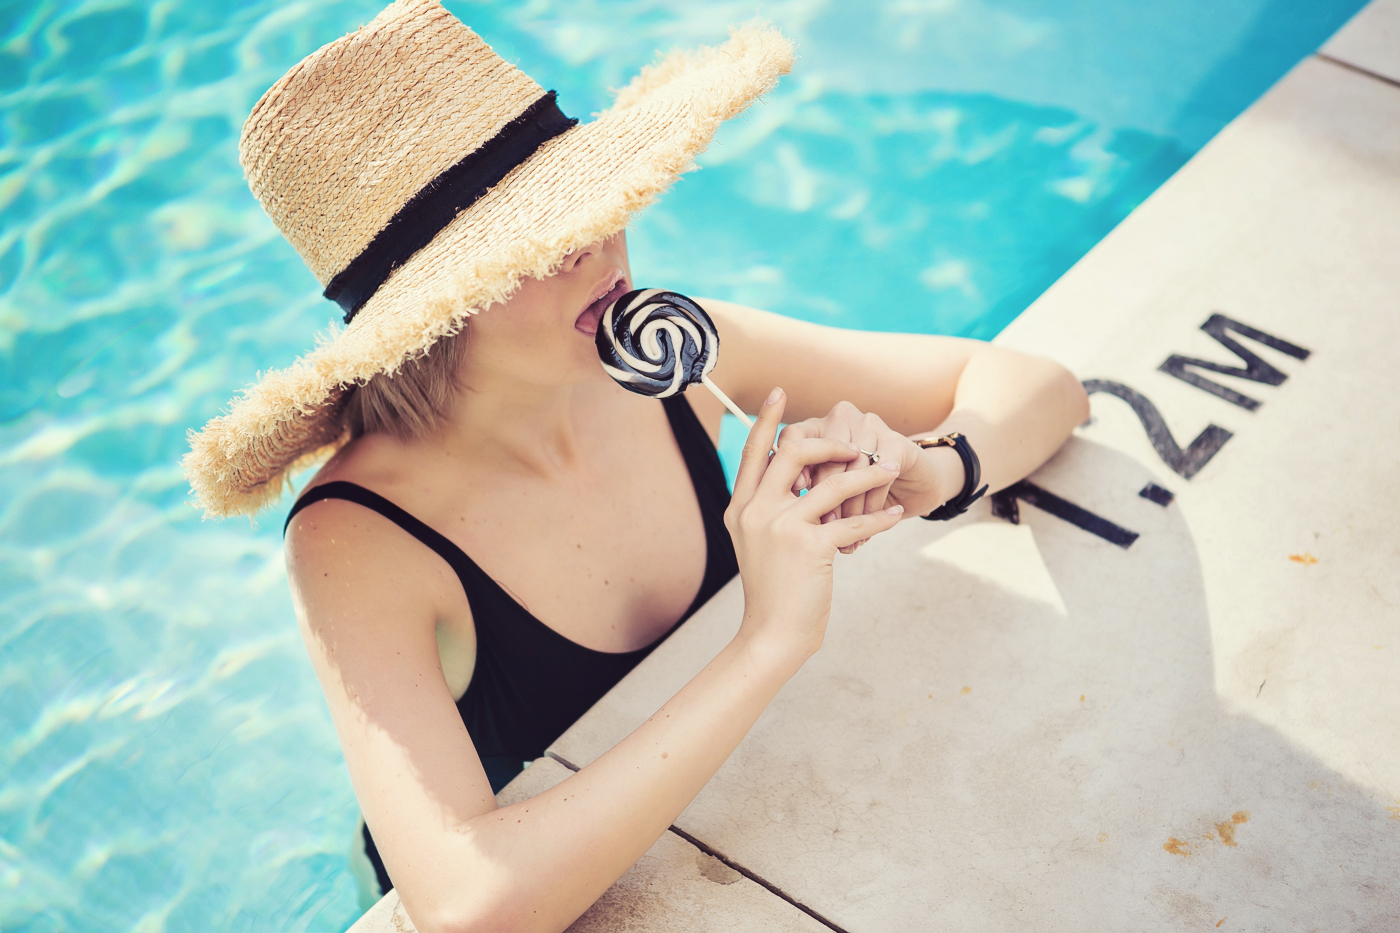 darya kamalova a fashion blogger from thecablook in dallas texas in jolie hotel in the roof swimming pool in zara one piece swimming suit and straw large hat for rewardstyle rsthecon-47 copy